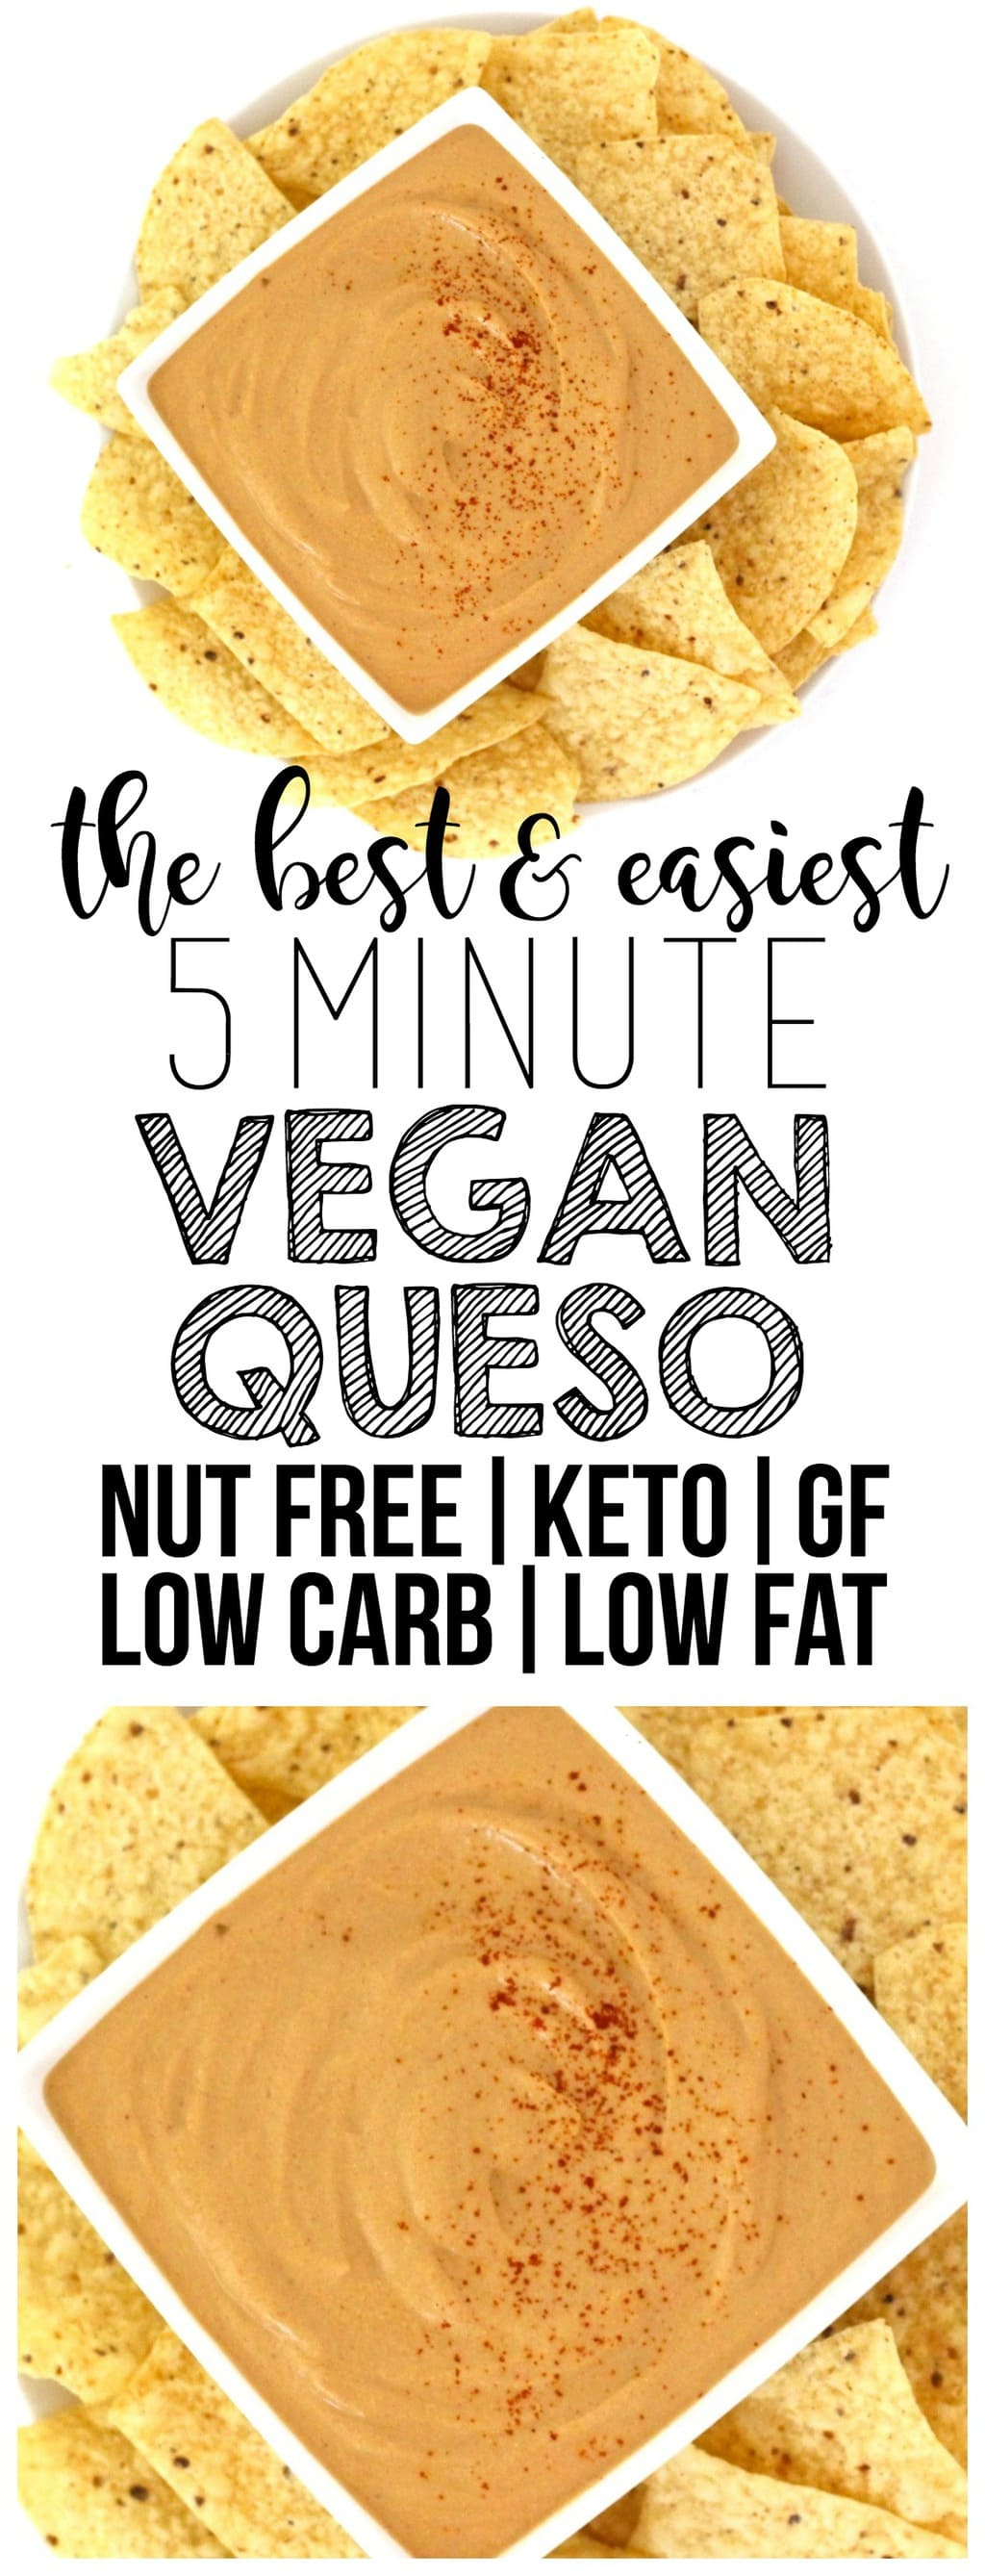 The BEST & easiest Vegan Queso that is ready in 5 minutes! (Keto, Low-Carb, Nut-Free, Oil-Free, Low-Fat, Gluten-Free, Dairy-Free)